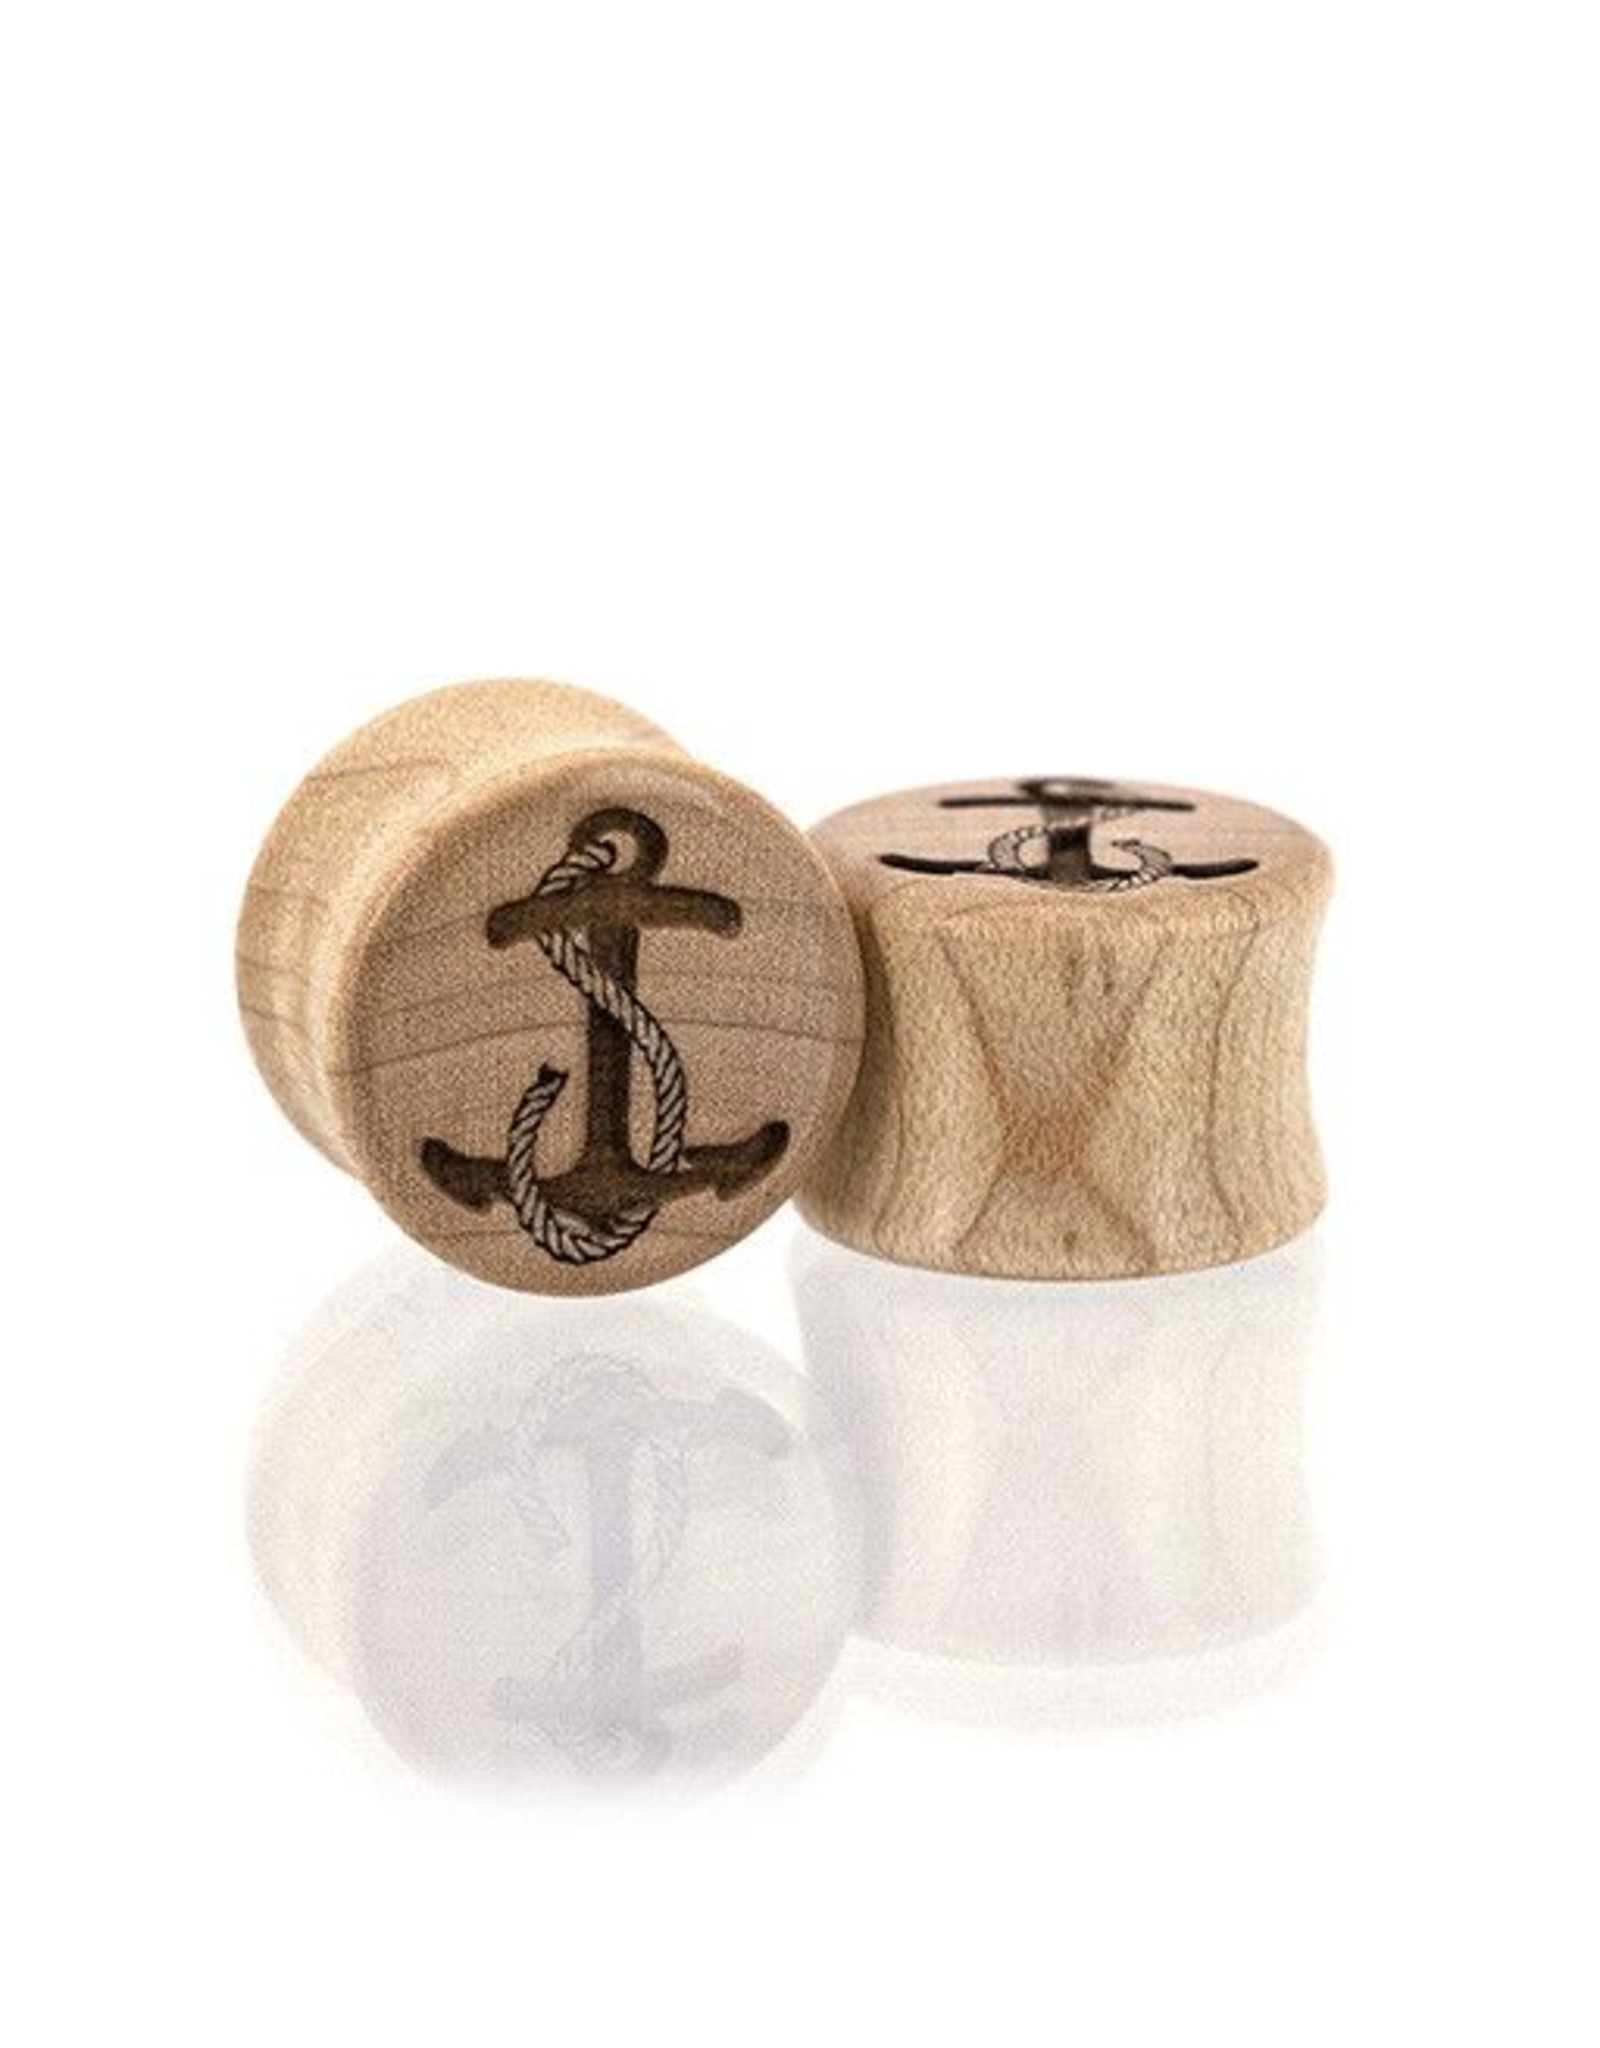 0g Anchor Plugs